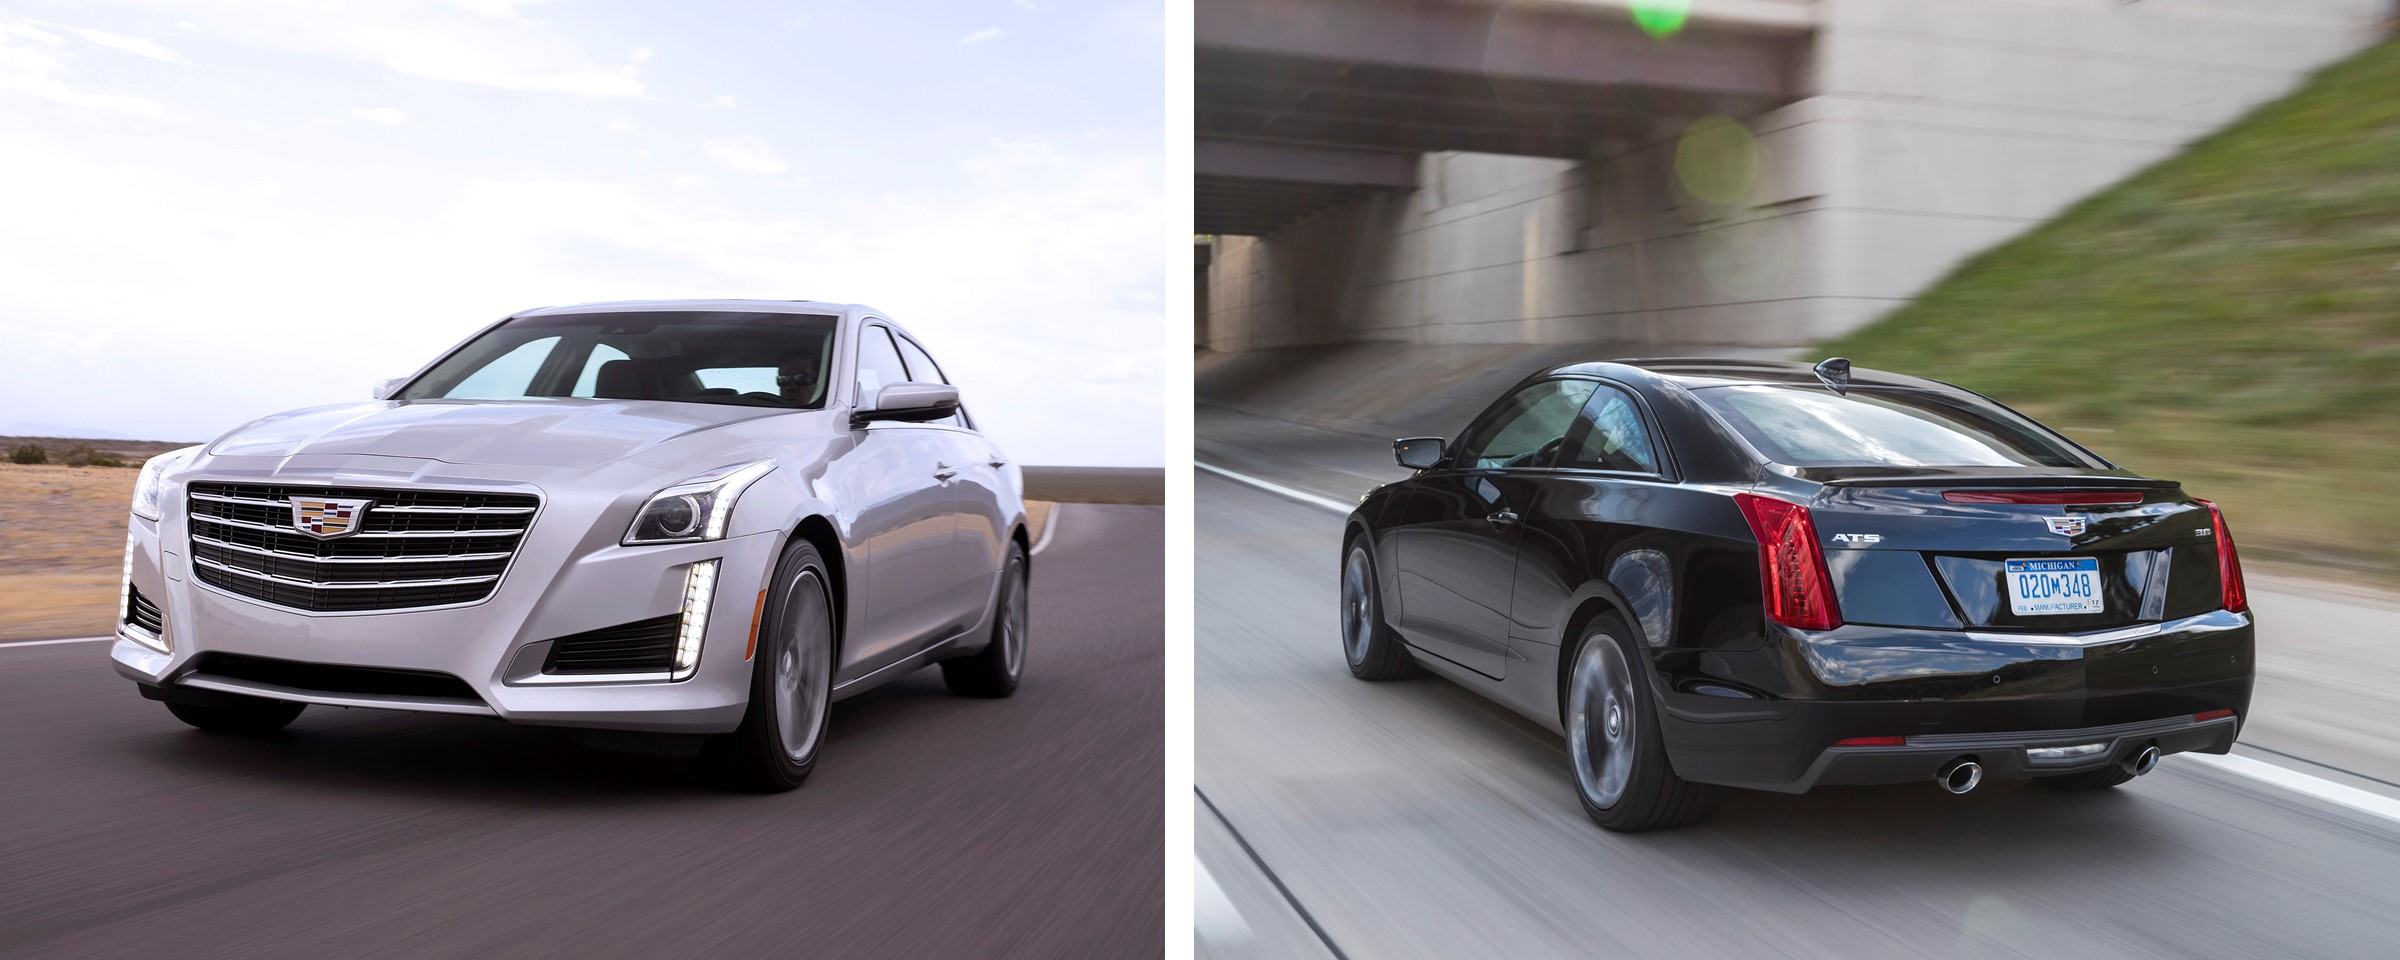 The cadillac ats and cts refined for 2017 baker motor for Baker motor company land rover